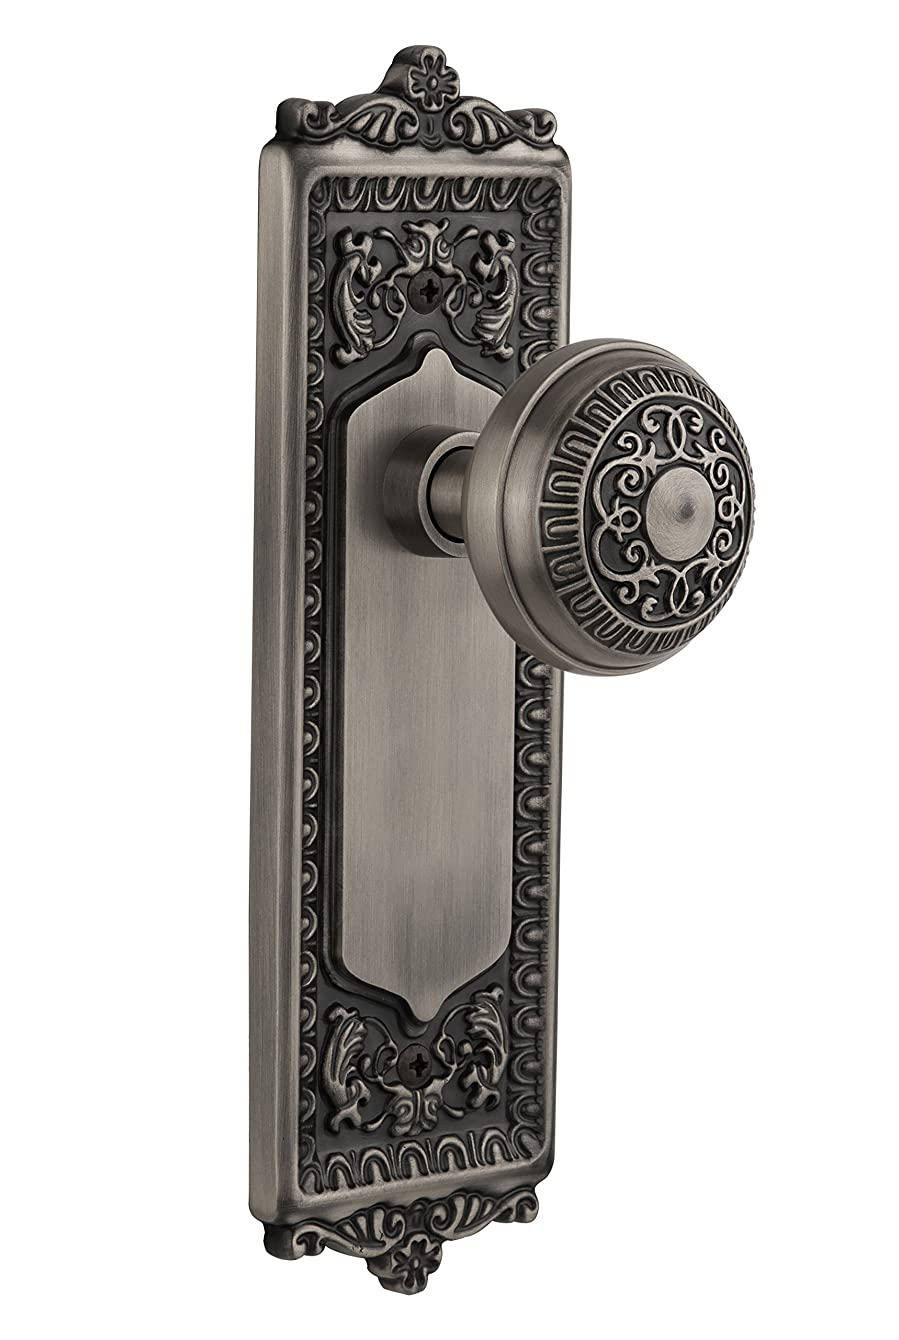 Nostalgic Warehouse BN40-EADEAD-AP Egg and Dart Plate with Egg and Dart Knob Privacy, Antique Pewter